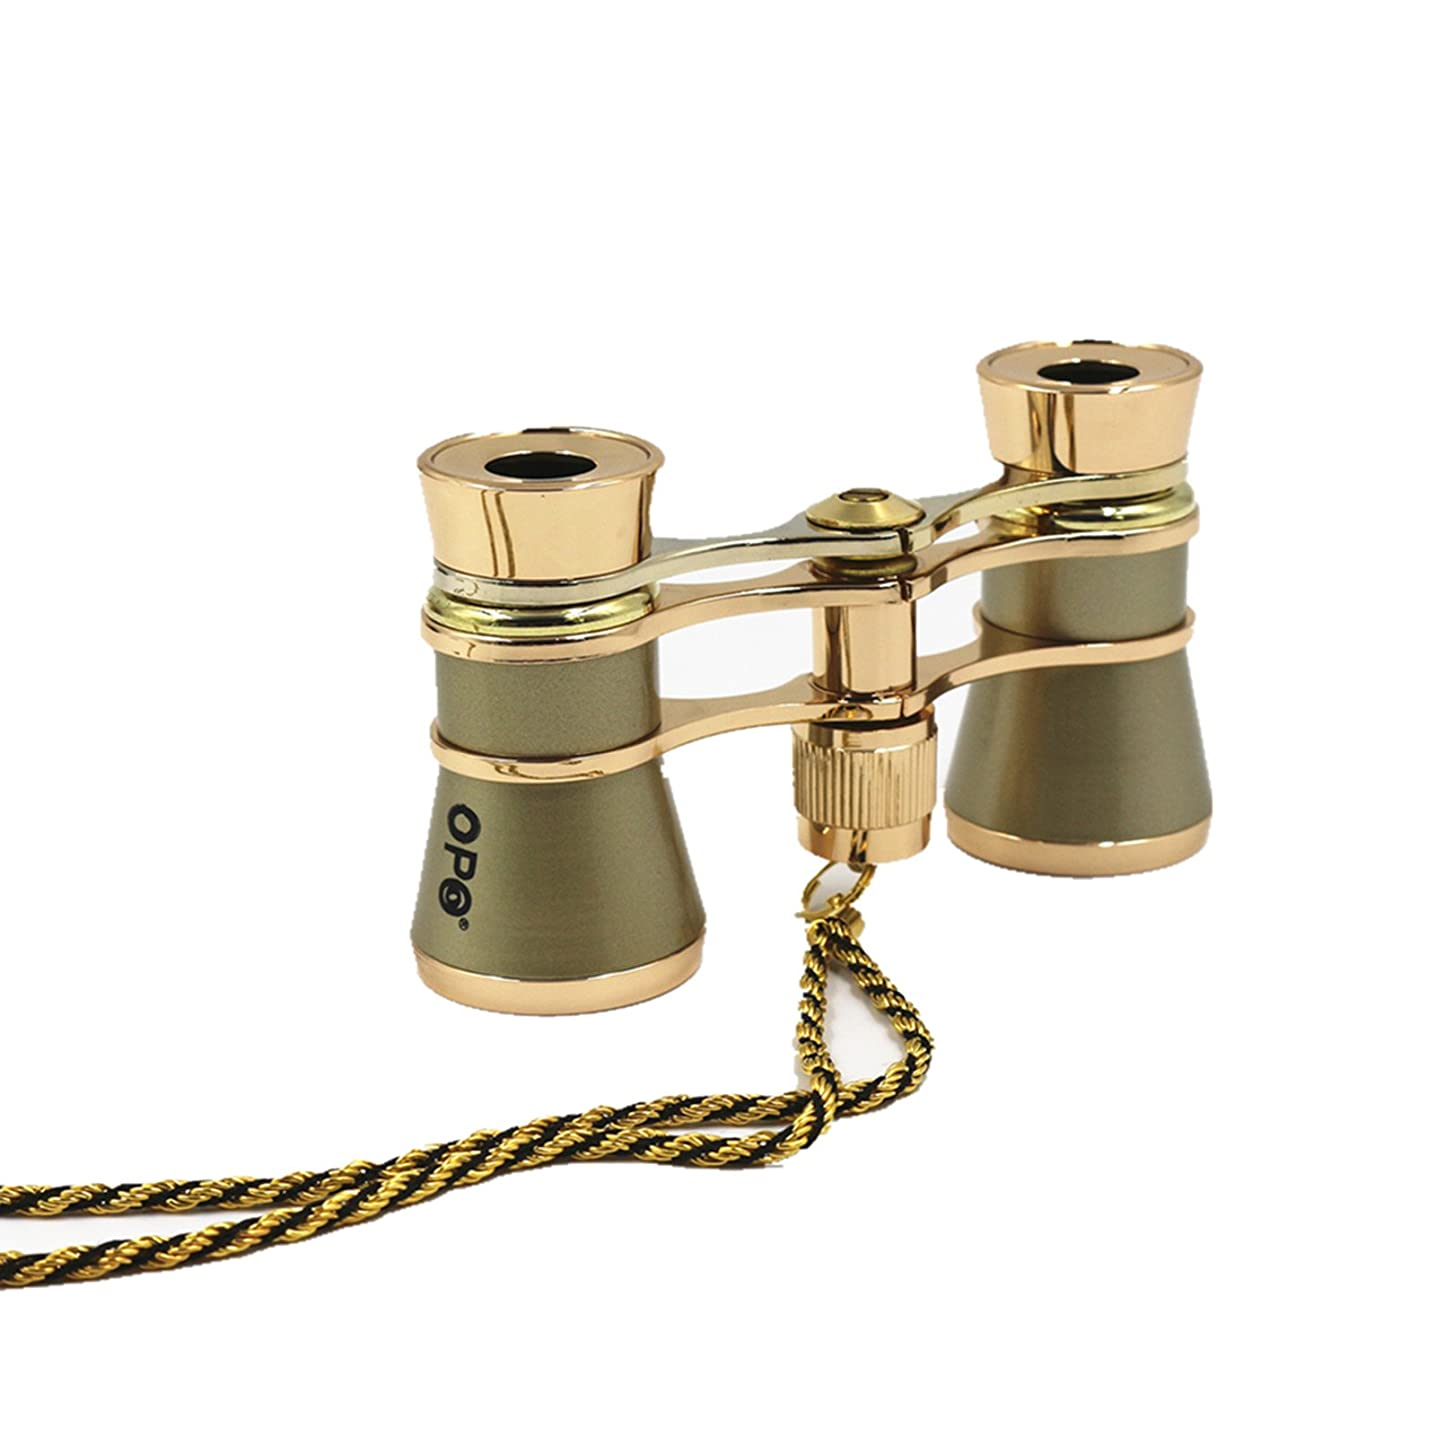 Opera Glasses Compact Binoculars for Theater Horse Racing Classical Lady Gift 3X25 with Gold Chain